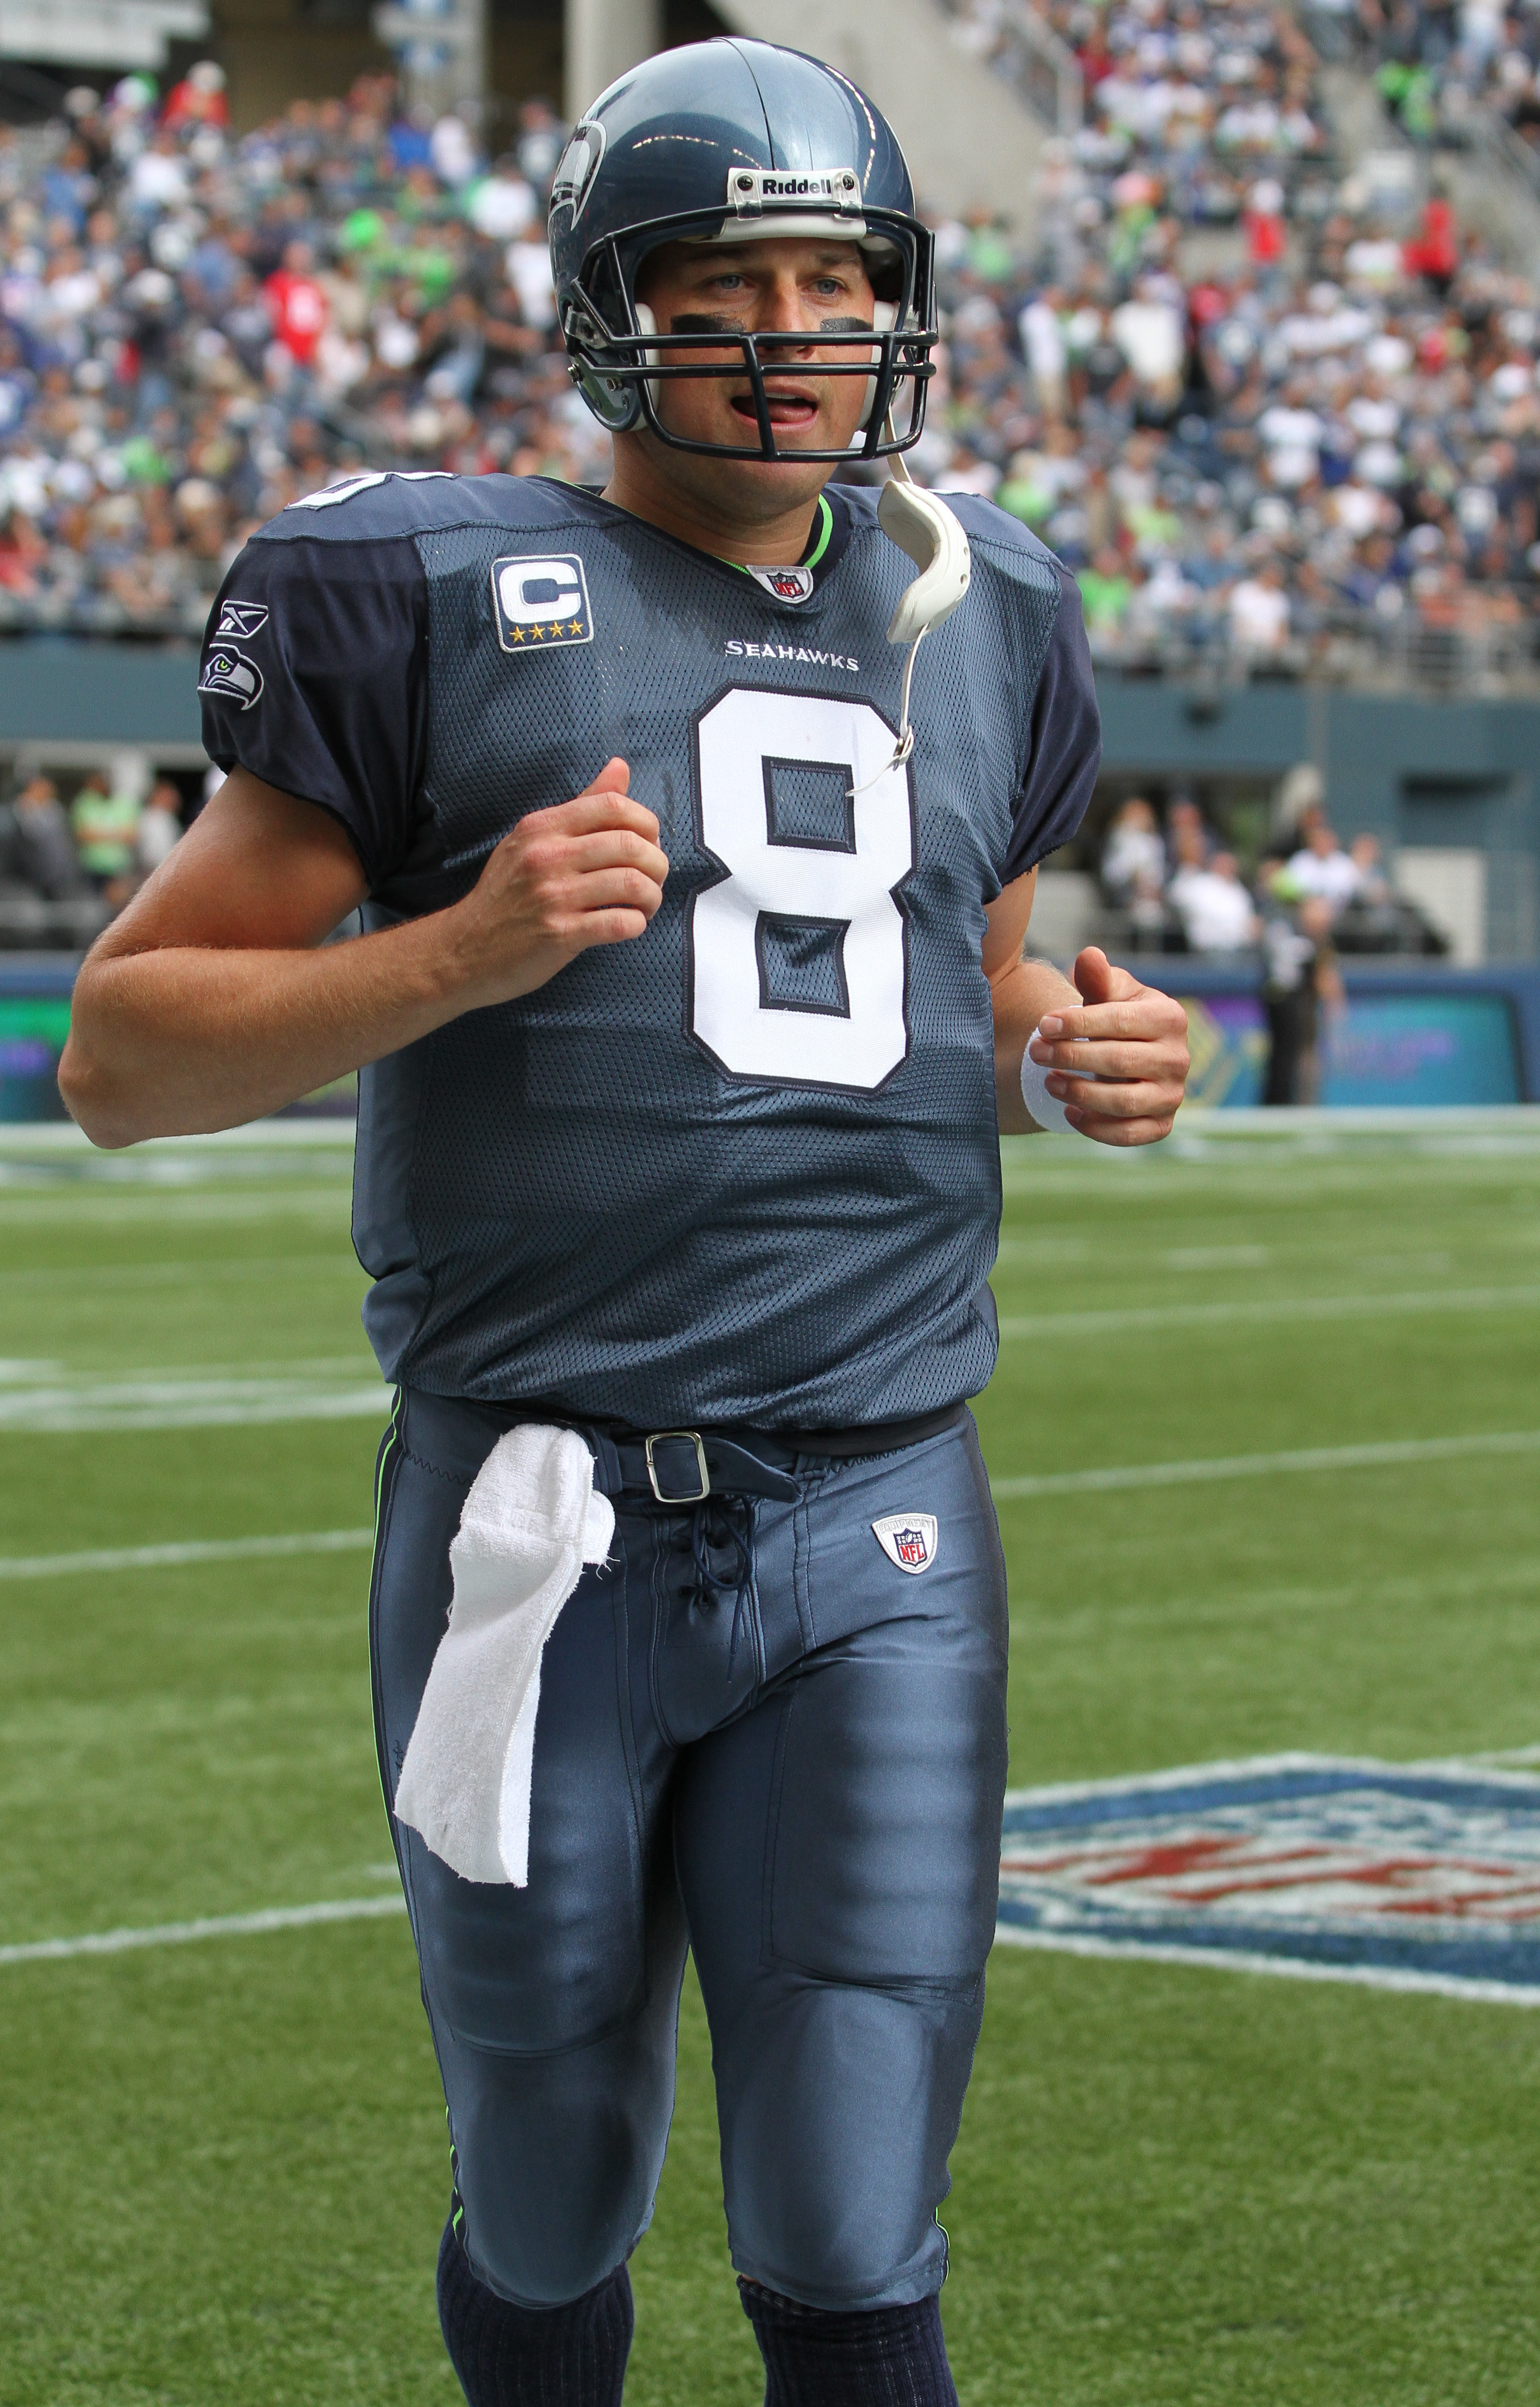 SEATTLE - SEPTEMBER 12:  Quarterback Matt Hasselbeck #8 of the Seattle Seahawks comes off the field after being intercepted on the first play from scrimmage during the NFL season opener against the San Francisco 49ers at Qwest Field on September 12, 2010